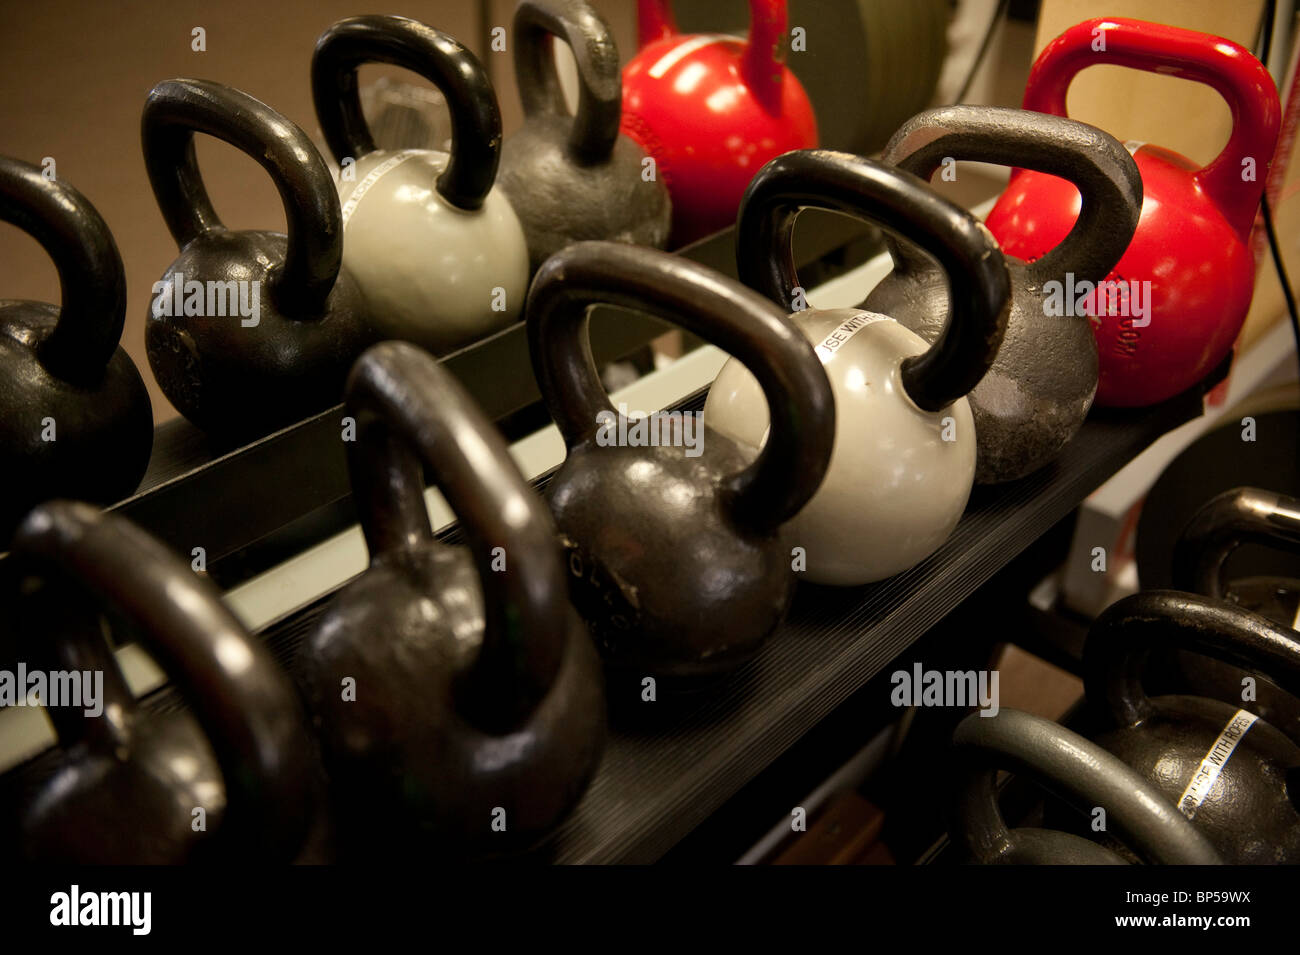 Kettlebell weights on a rack in a gym - Stock Image